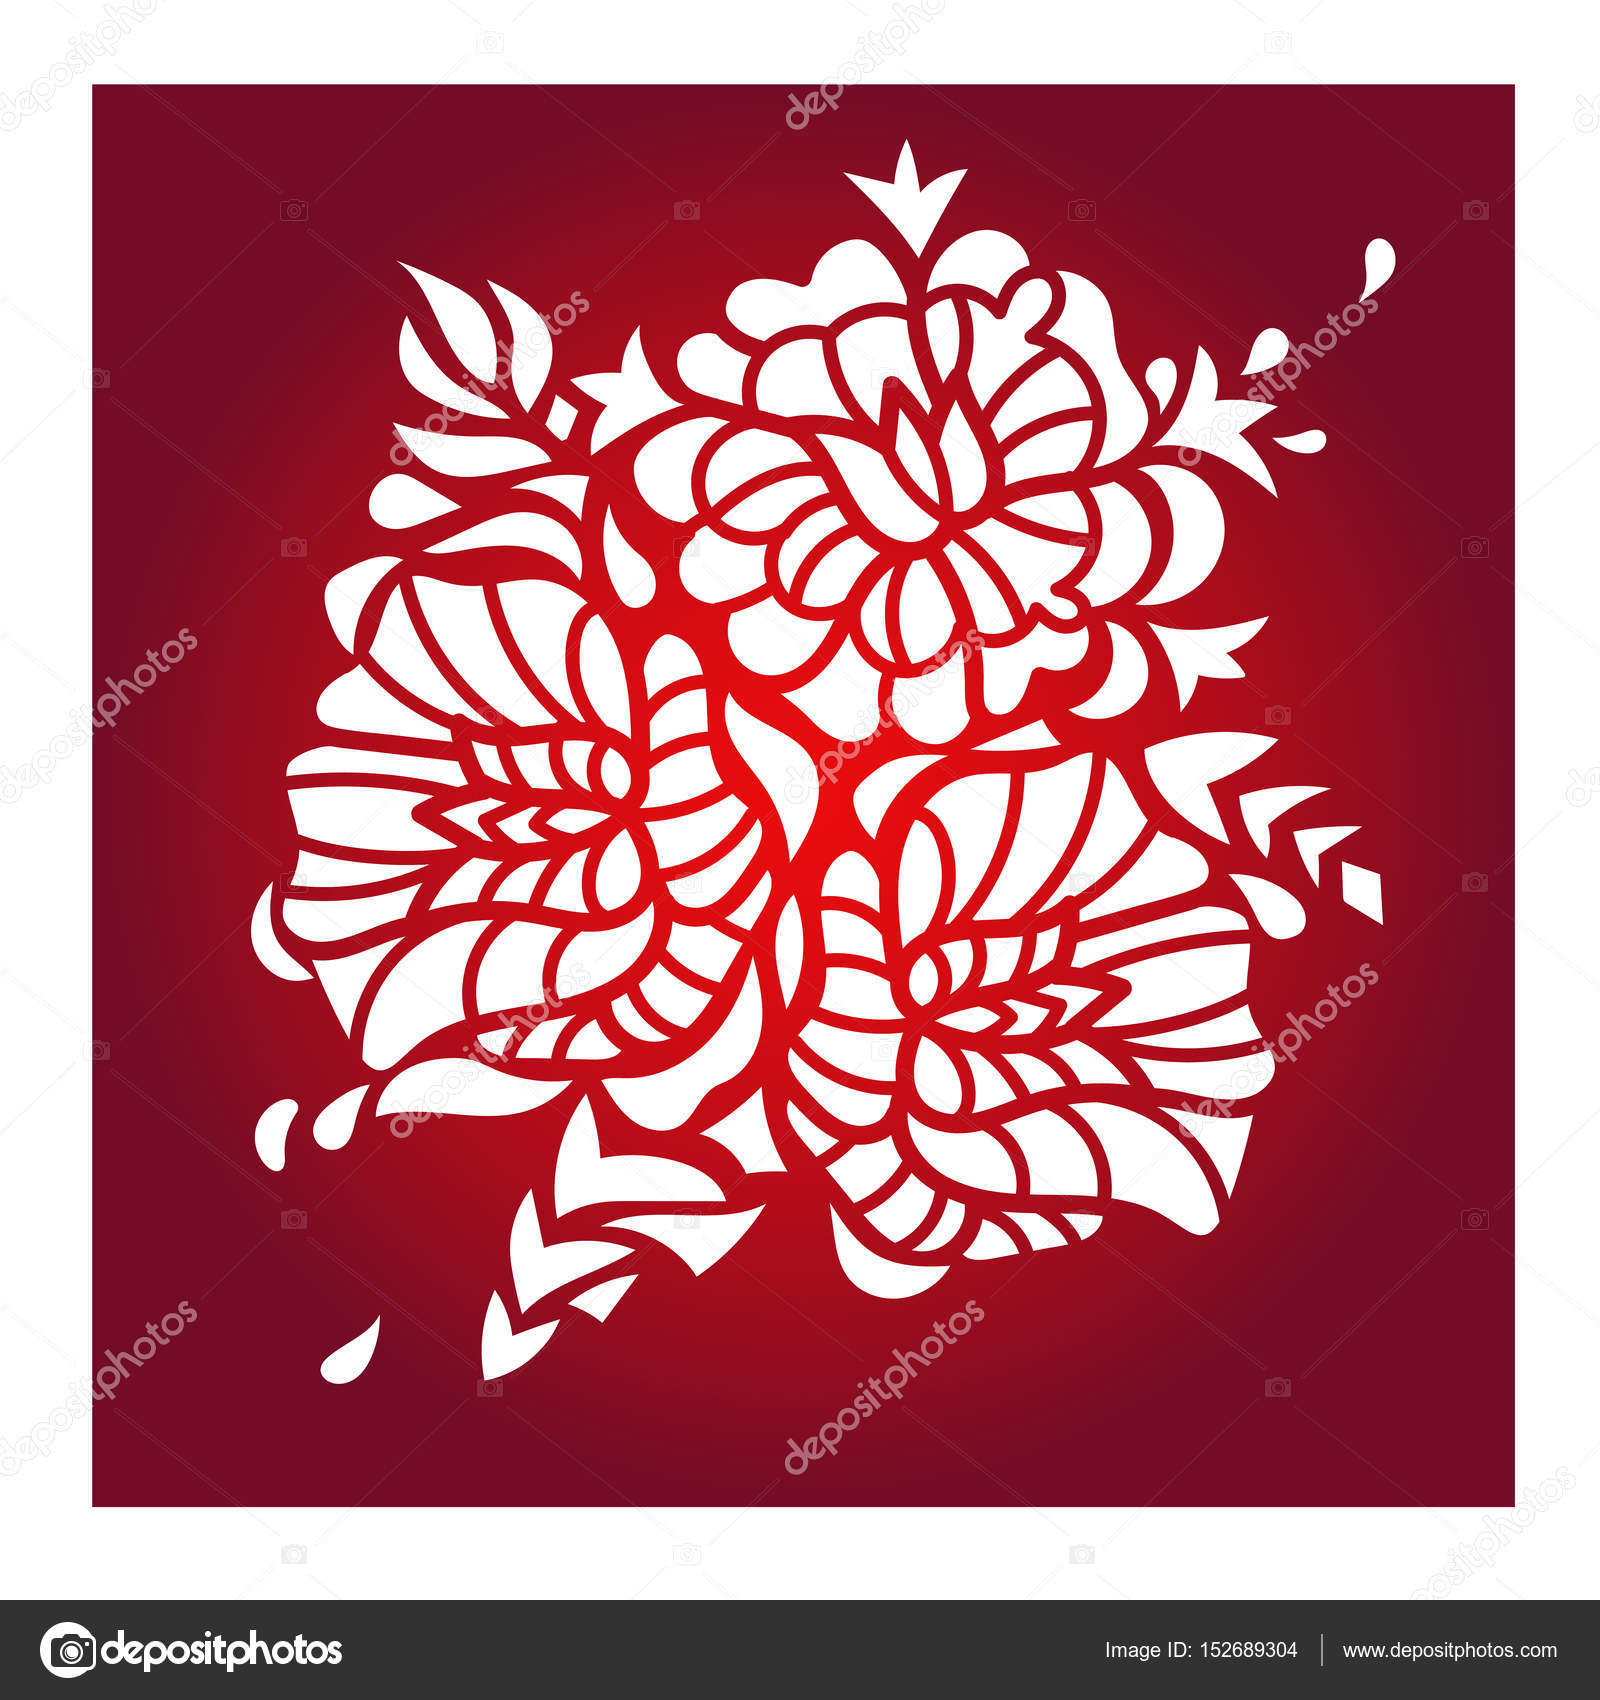 Laser cut vector template stock vector yazzik 152689304 laser cut flower pattern for decorative panel vector template ready for printing postcards packets wedding invitation wood engraving papermetal stopboris Images